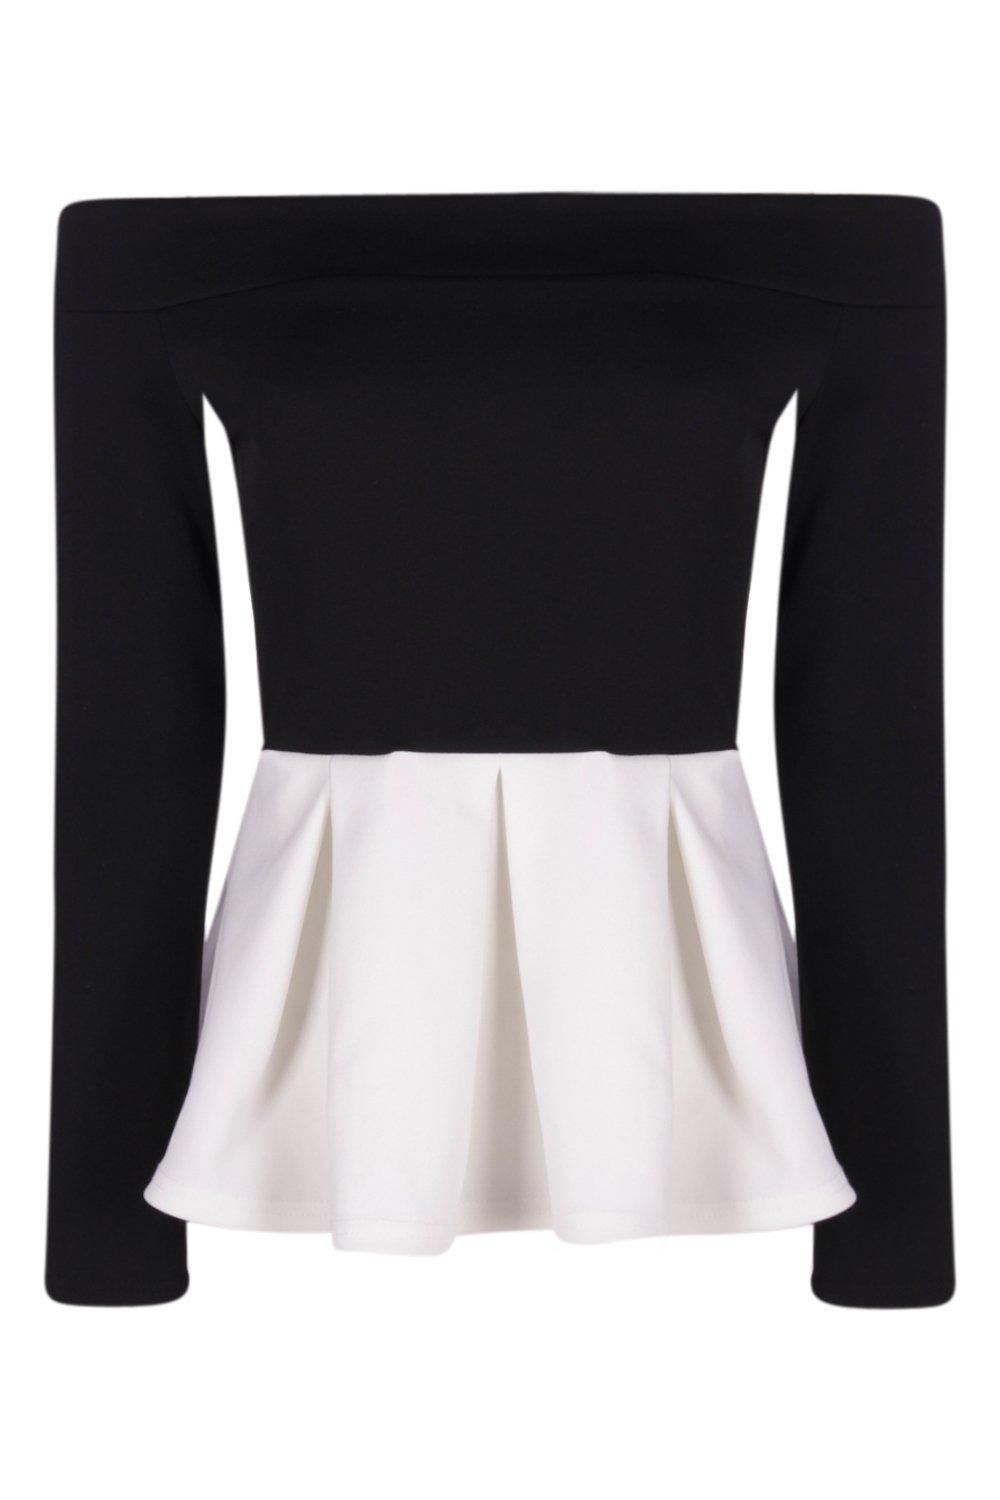 Lola Off The Shoulder Mono Box Pleat Peplum